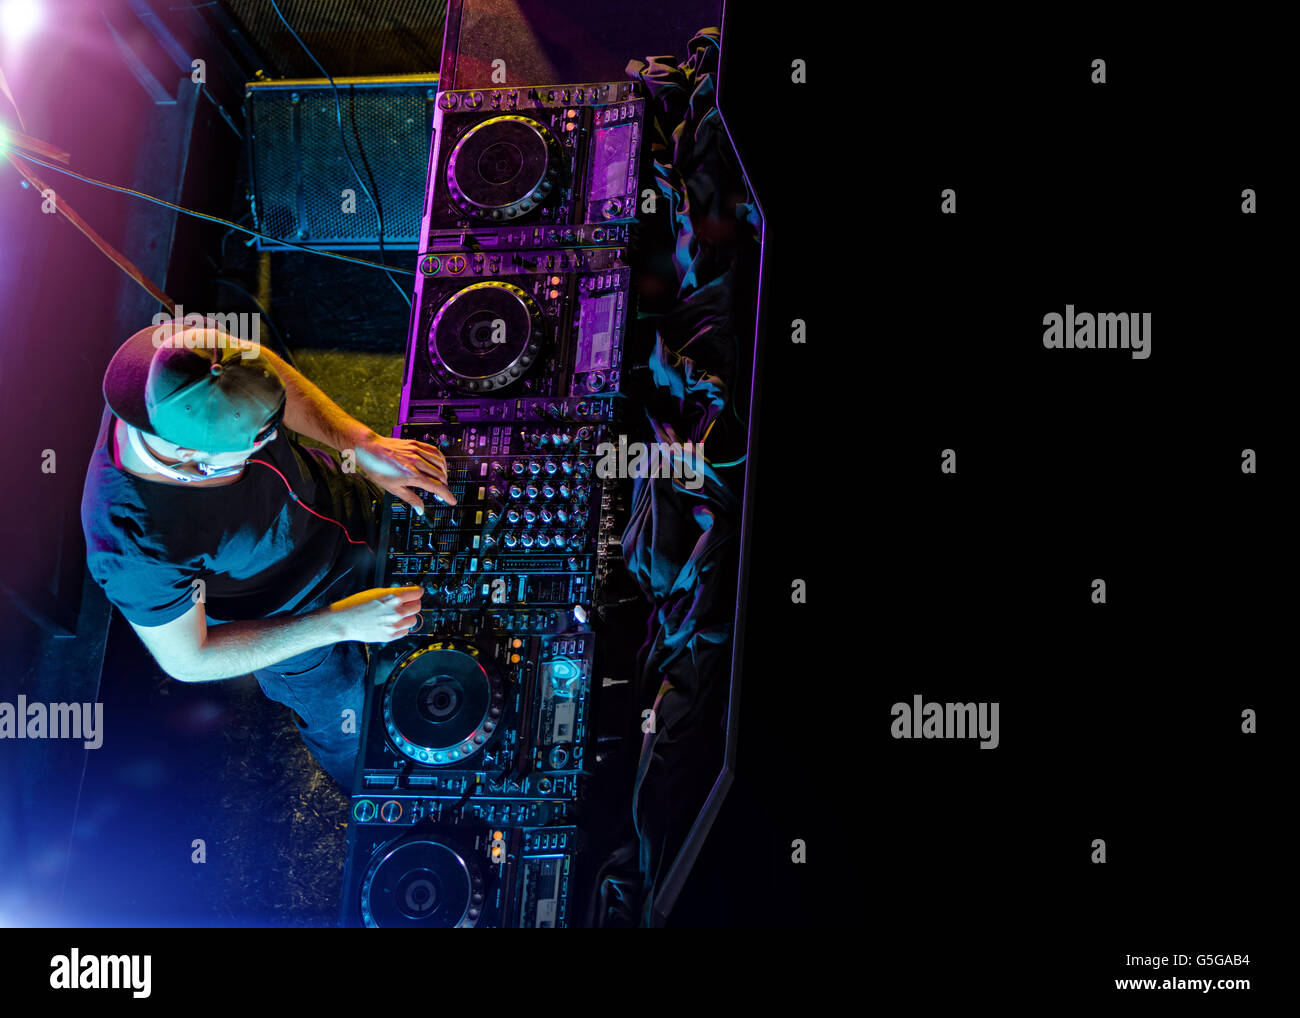 Disc jockey mixing electronic music in club. Shot from aerial percspective. Copyspace for text - Stock Image